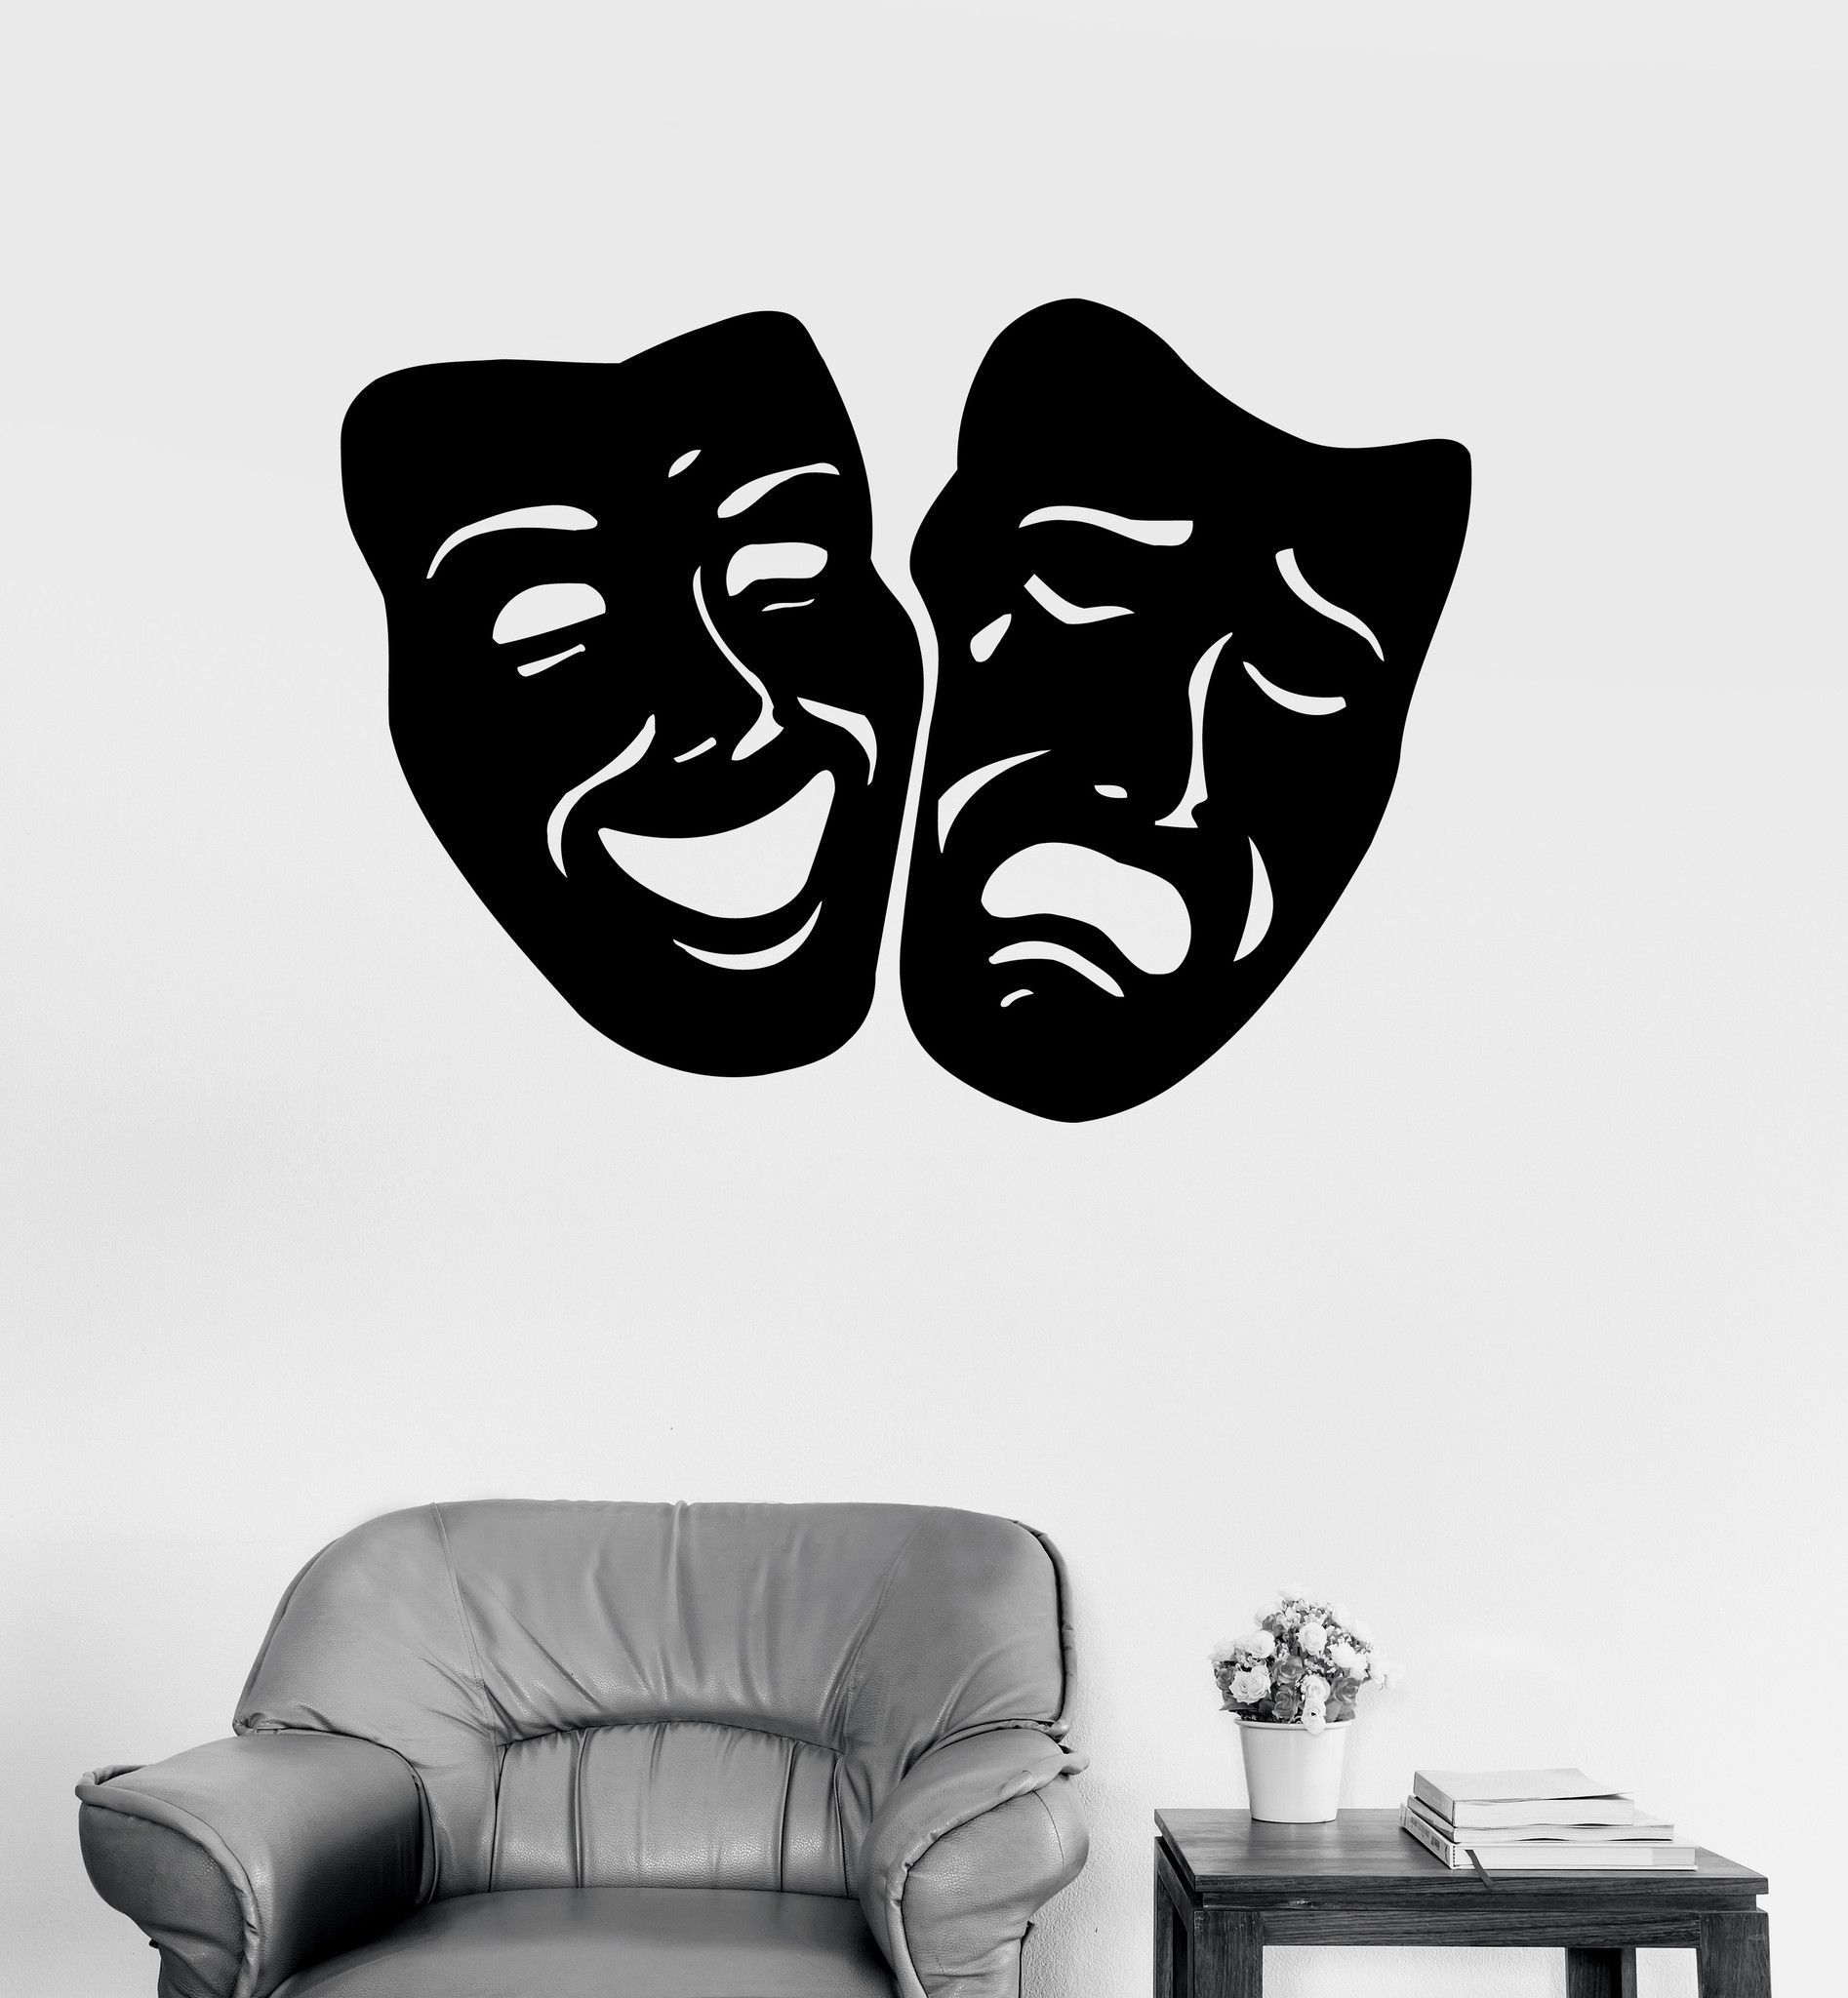 Wall Decals Mask Theatre Secret Vinyl Sticker Z Wall Decals - Locations where sell wall decals